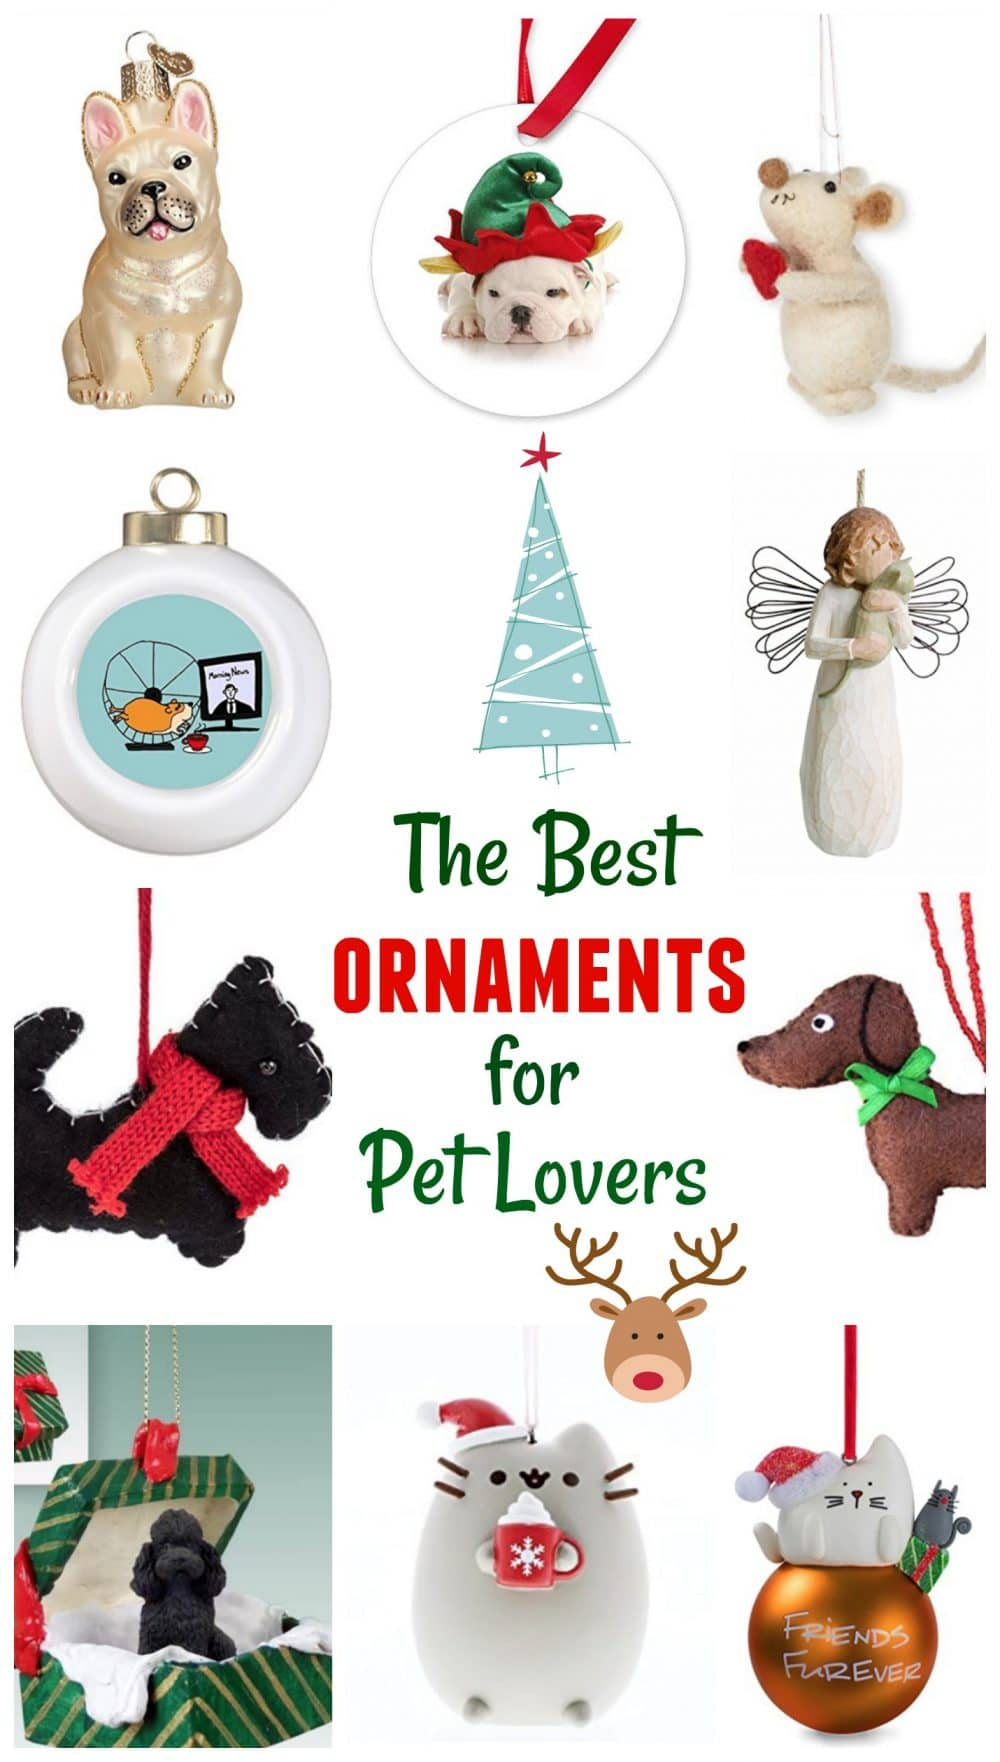 Best ornaments for pet lovers